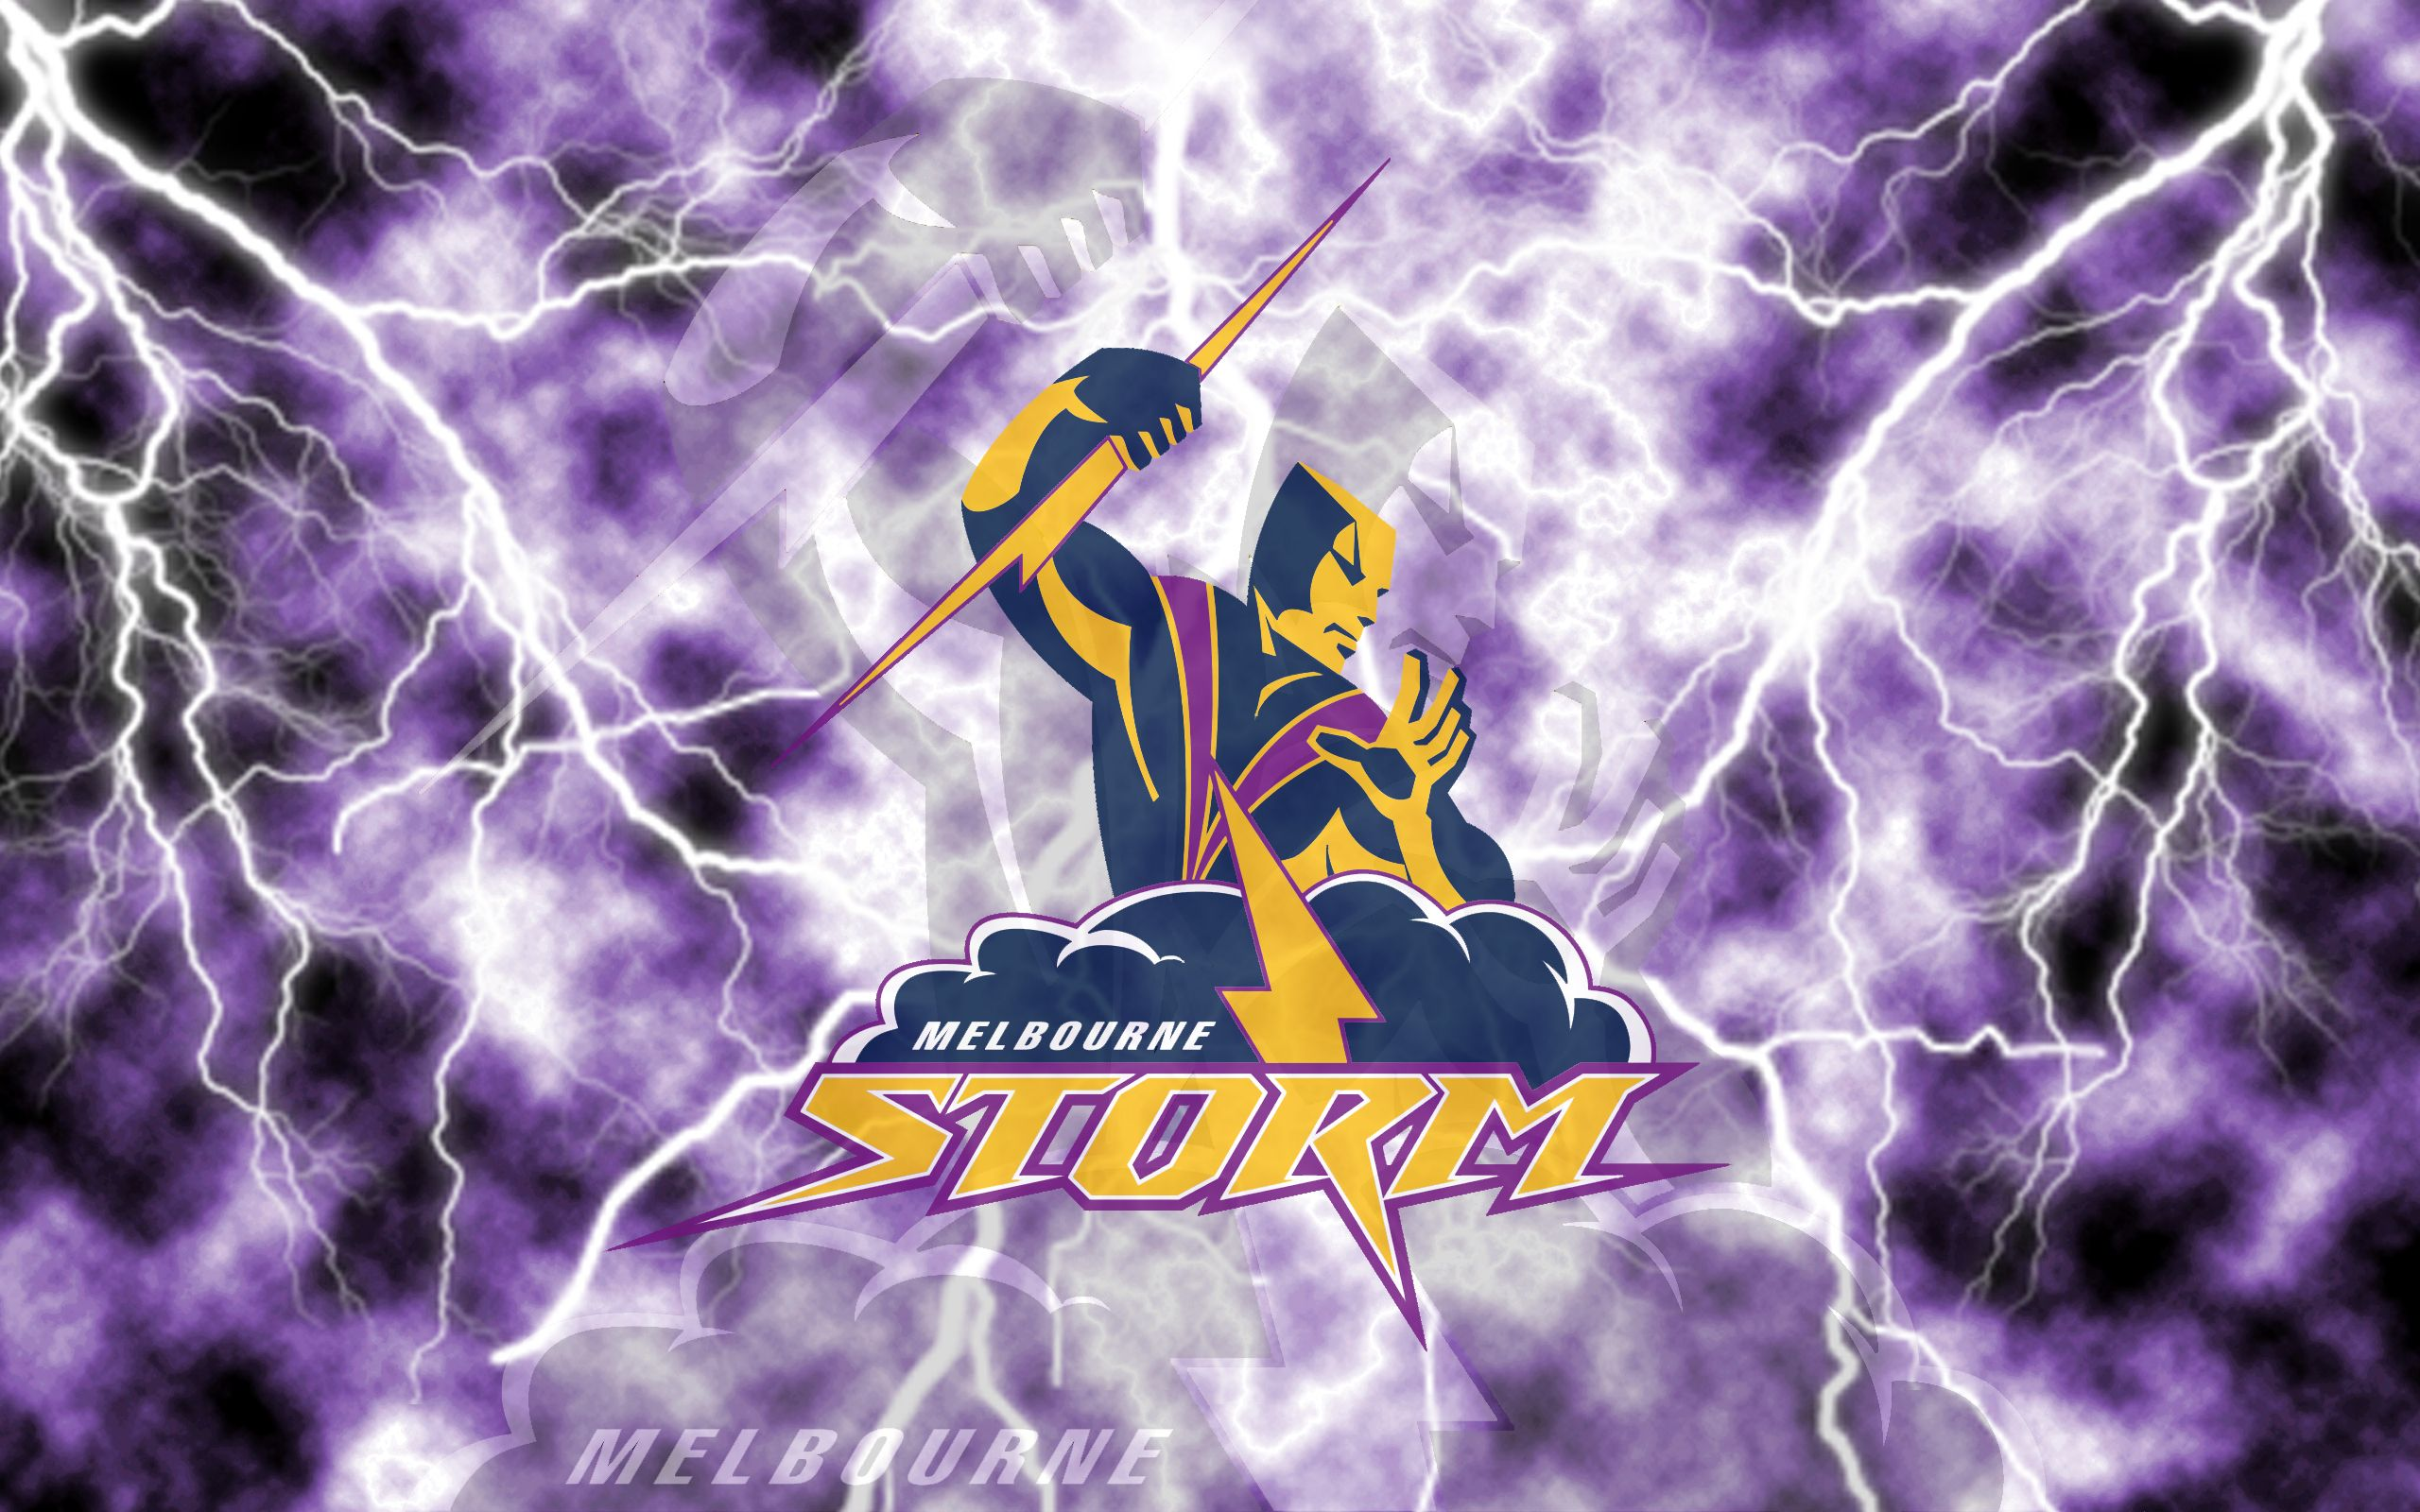 Melbourne Storm Lightning Wallpaper Version 1 By Sunnyboiiii Storm Wallpaper Storm English Dictionaries